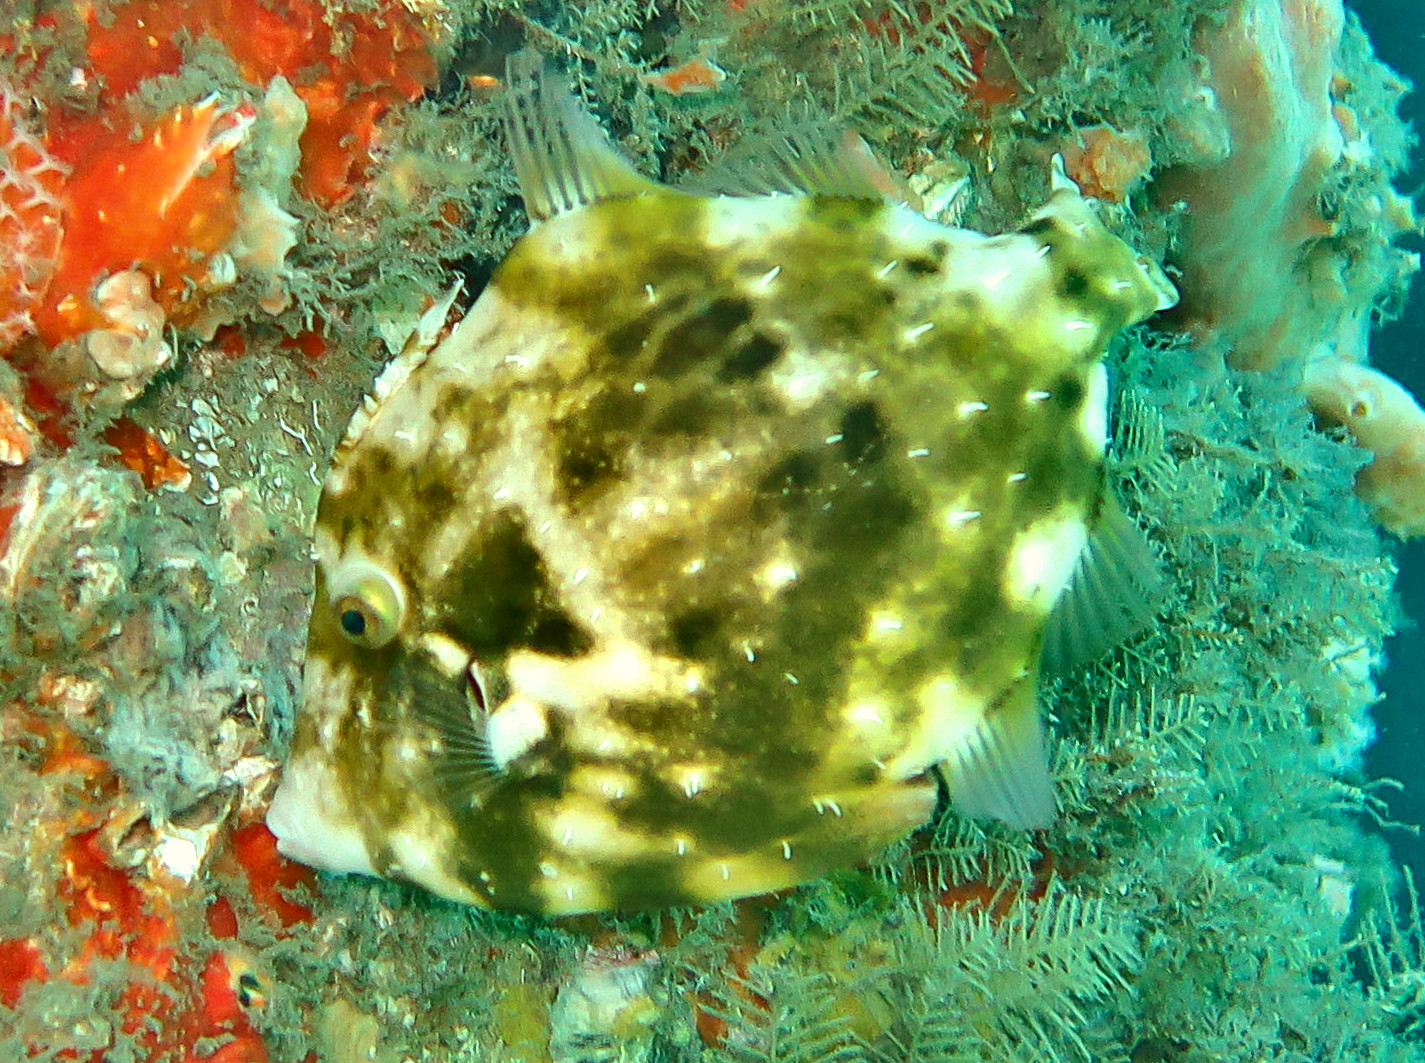 Fringed Filefish - Monacanthus ciliatus